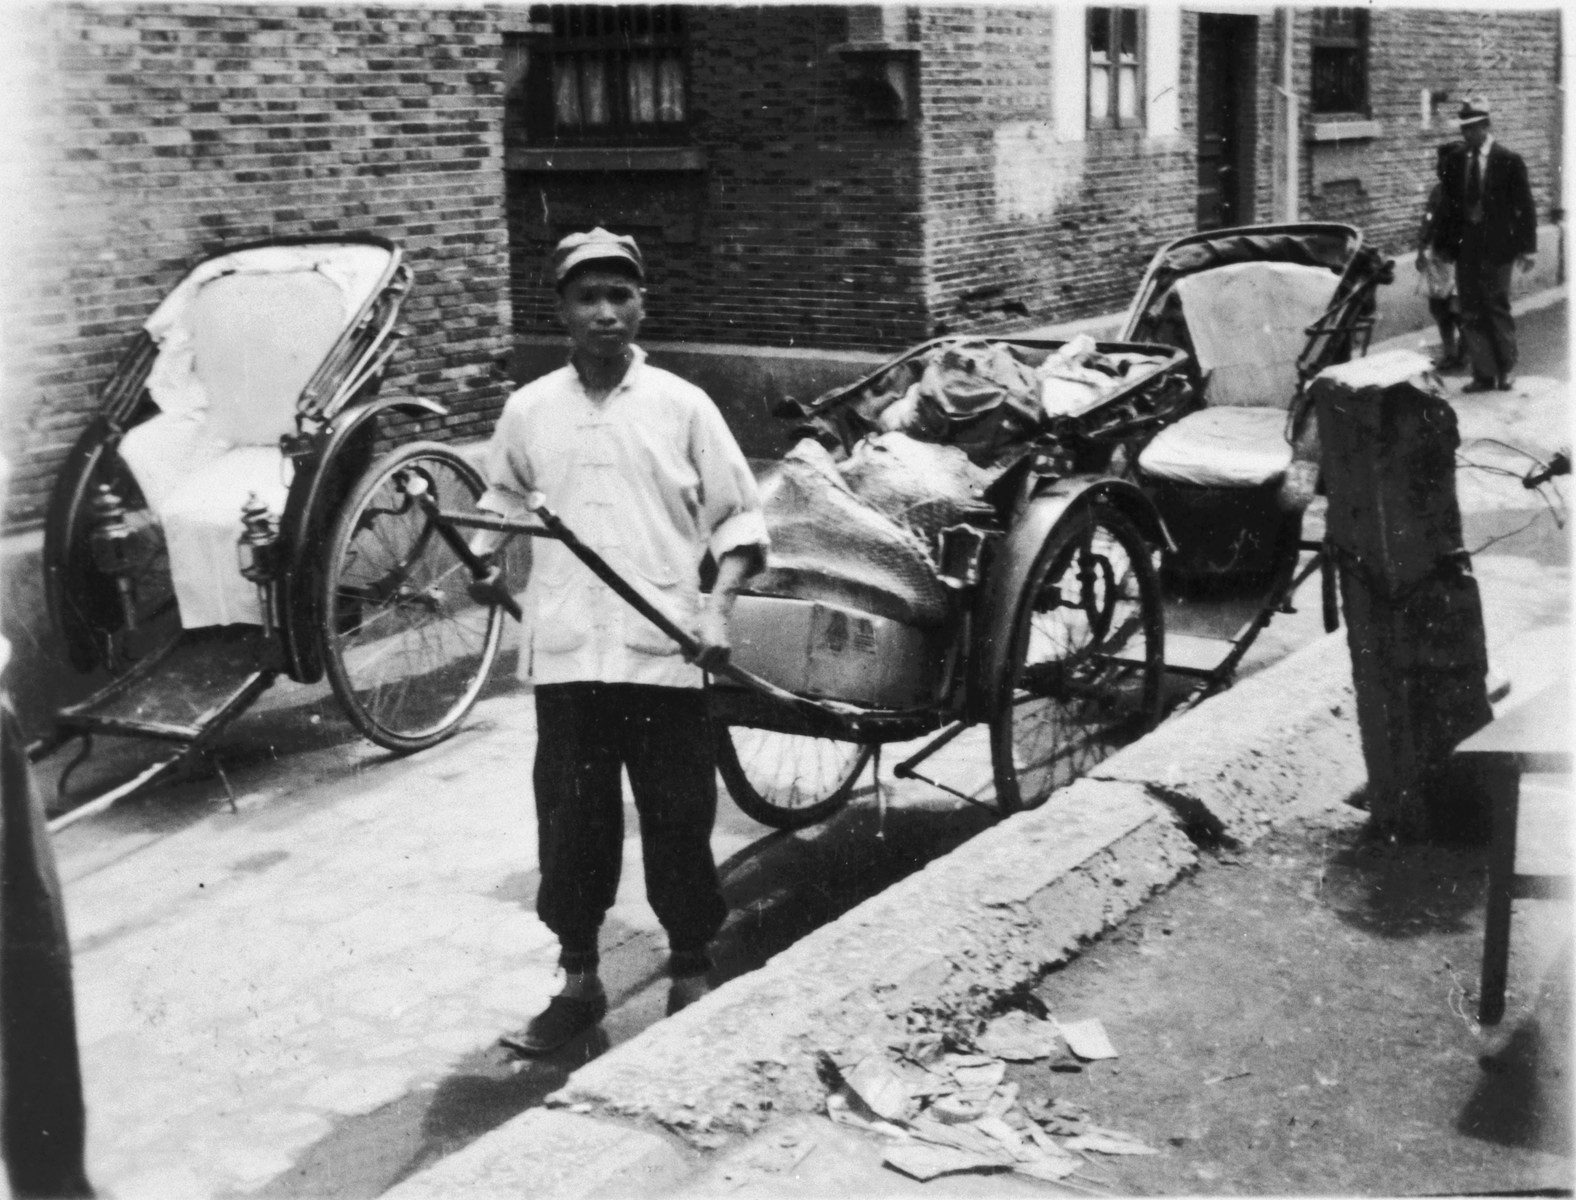 A Chinese man pulls a hand cart filled with bundles down a street in Shanghai.